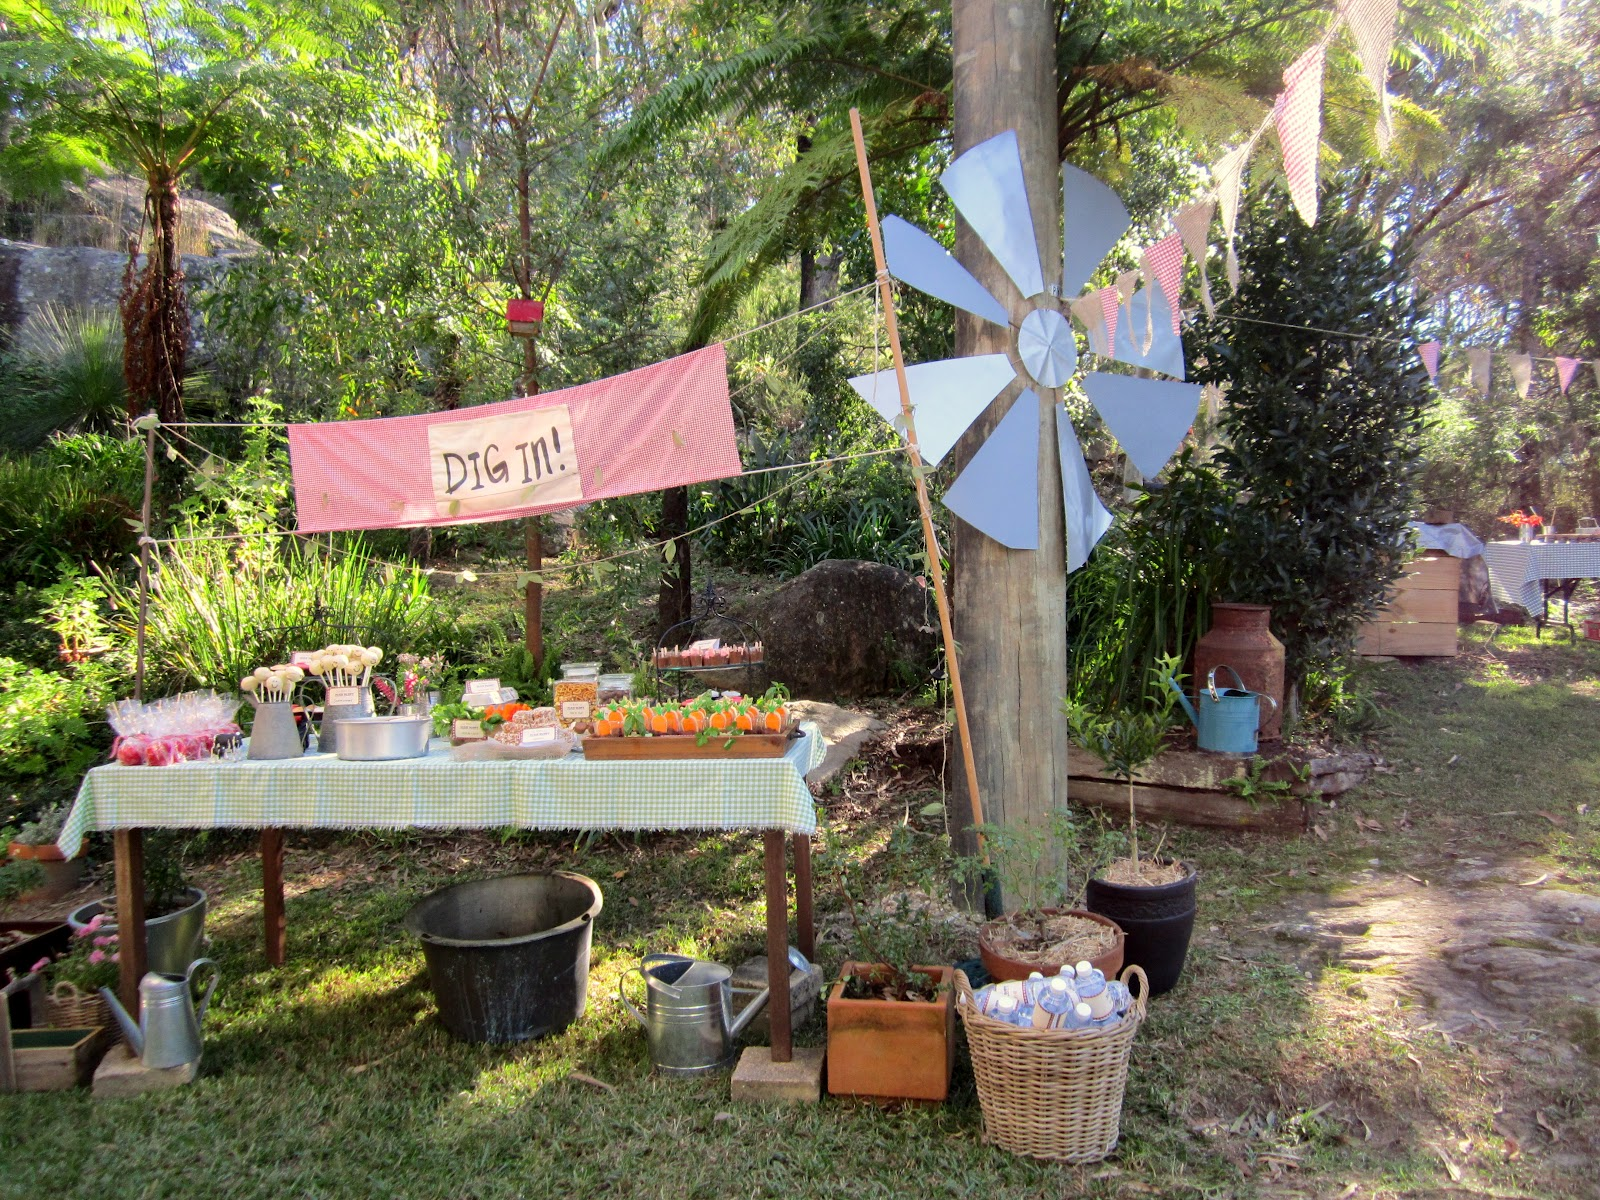 Oh good golly gosh, it's a Farm Party Backyard Barnyard Ideas on backyard bbq, backyard farming, backyard party, backyard bash, backyard fire, backyard beehive, backyard bounce,